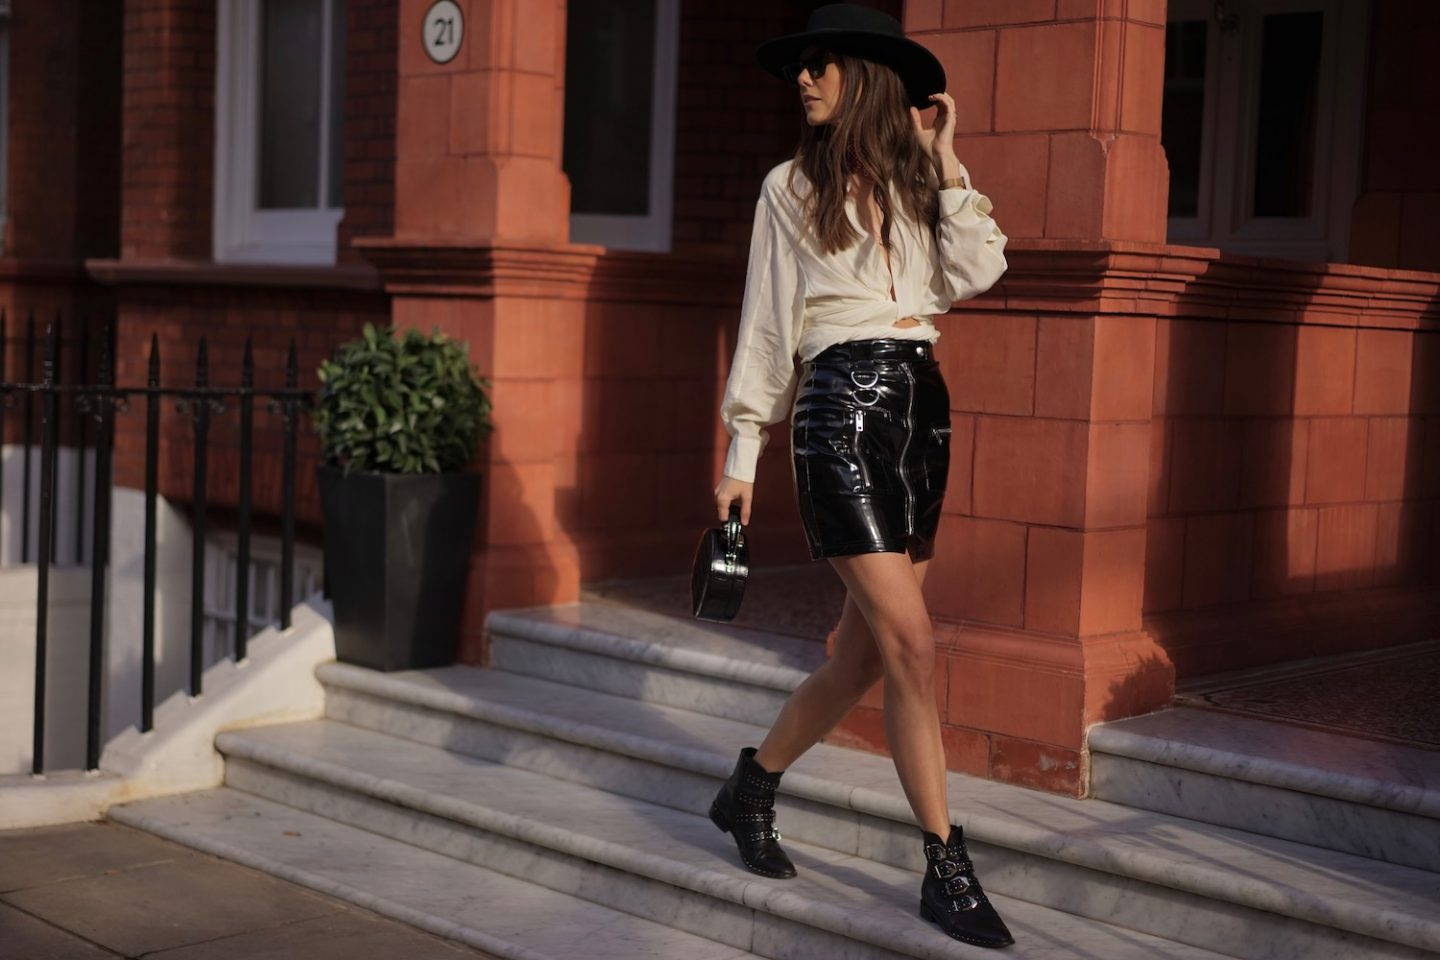 White Shirt PVC Skirt Black Felt Hat